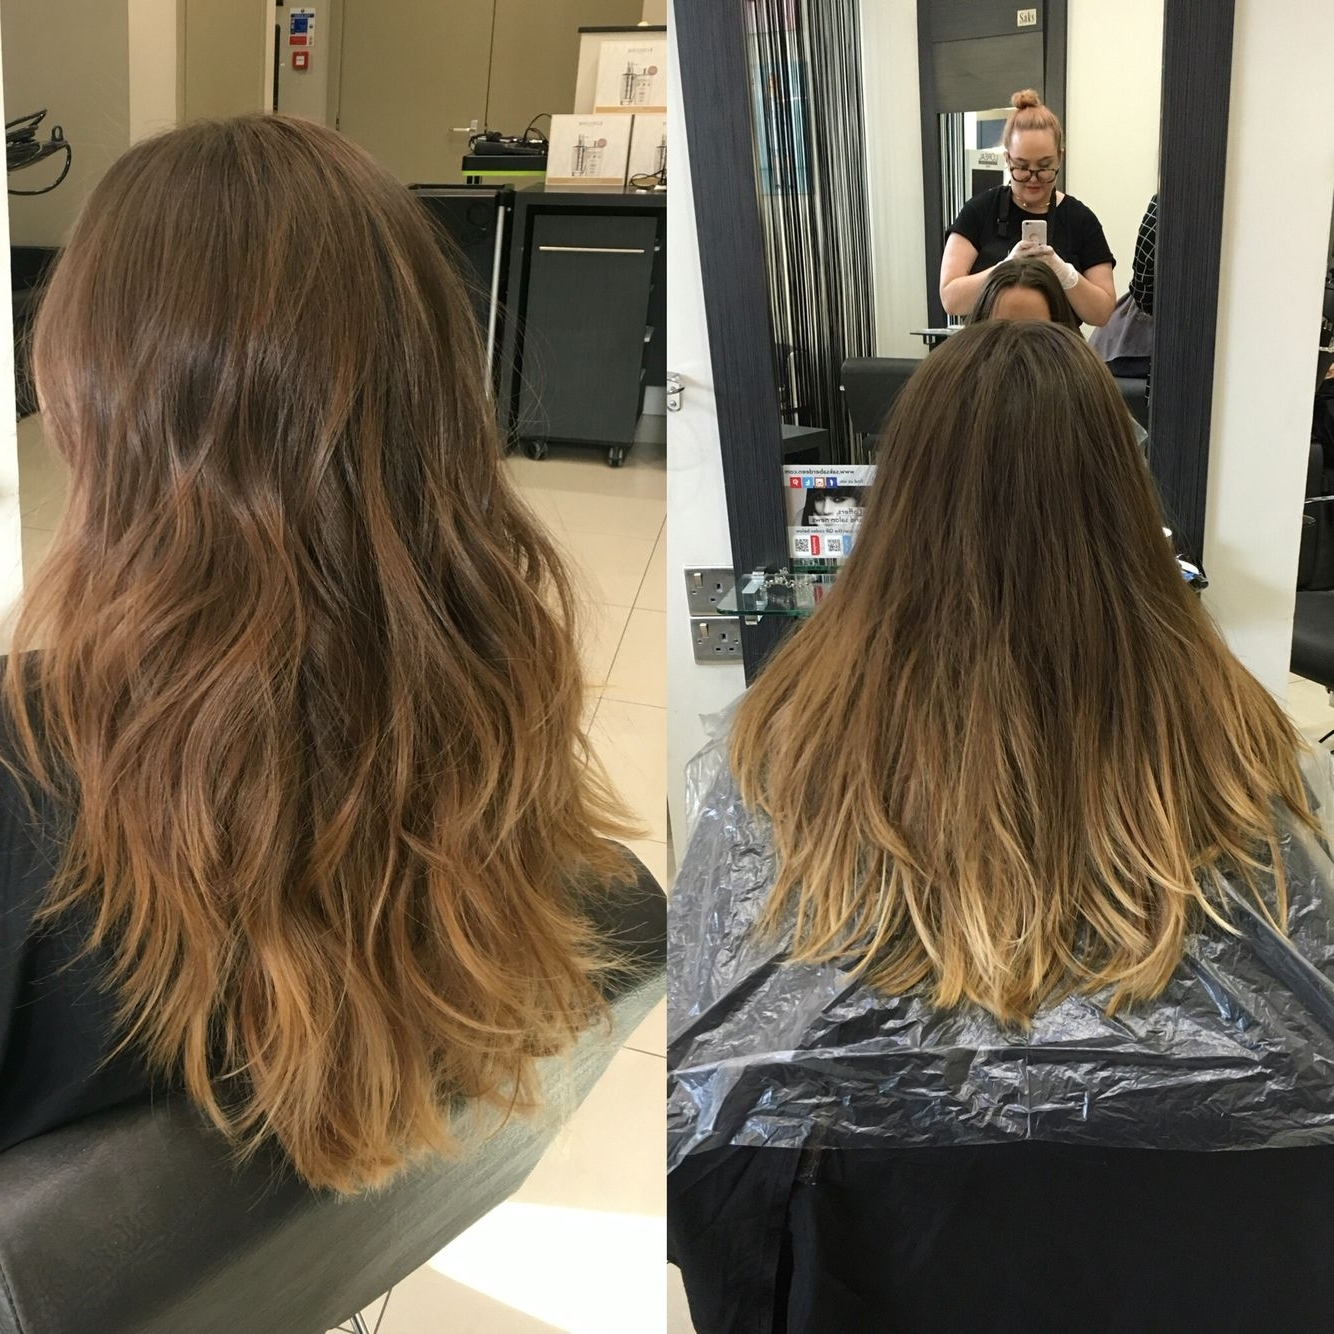 Recent Subtle Brown Blonde Ombre Hairstyles Pertaining To New Hair Balayage Subtle Brown Blonde Highlights To Cover And Tone (View 15 of 20)